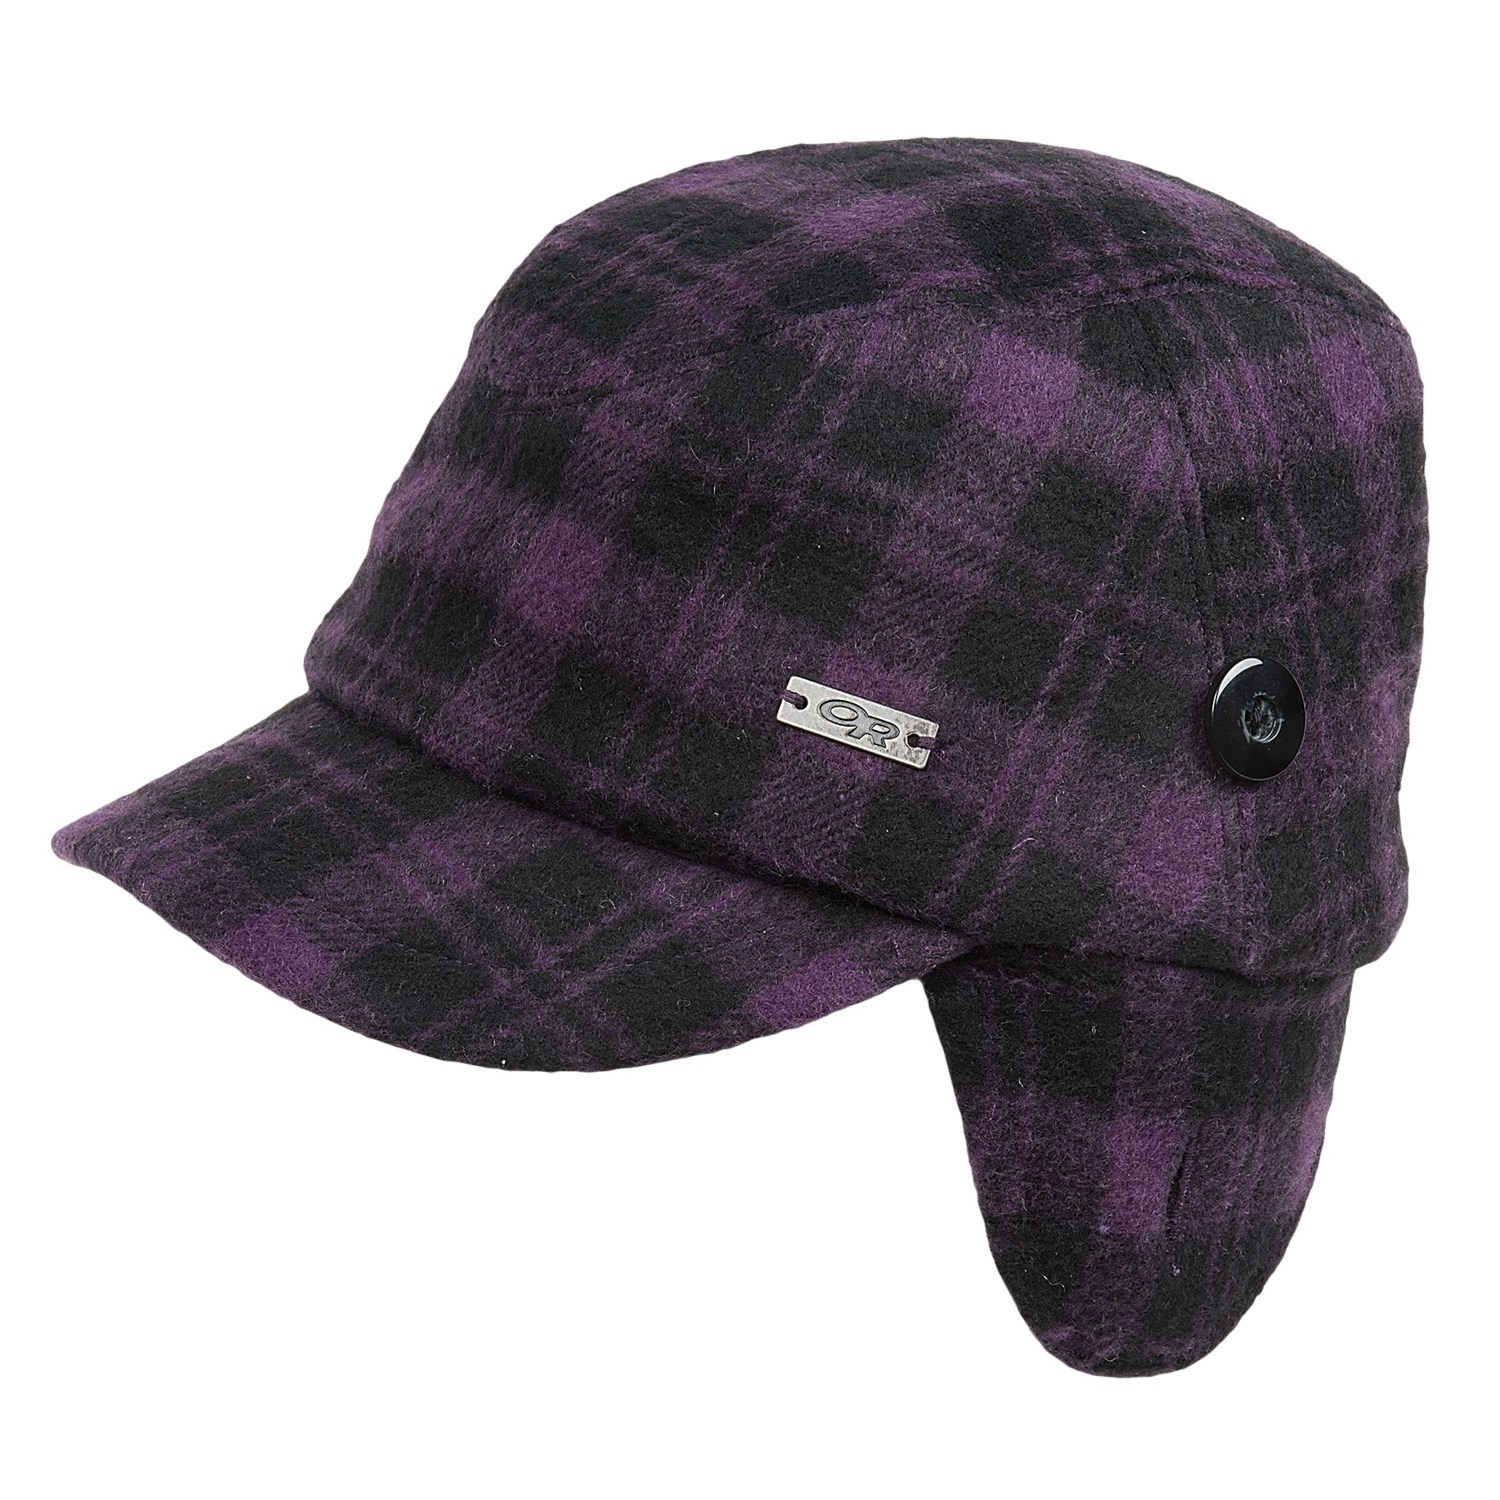 Outdoor Research Yukon Cap For Women 7843v Save 63